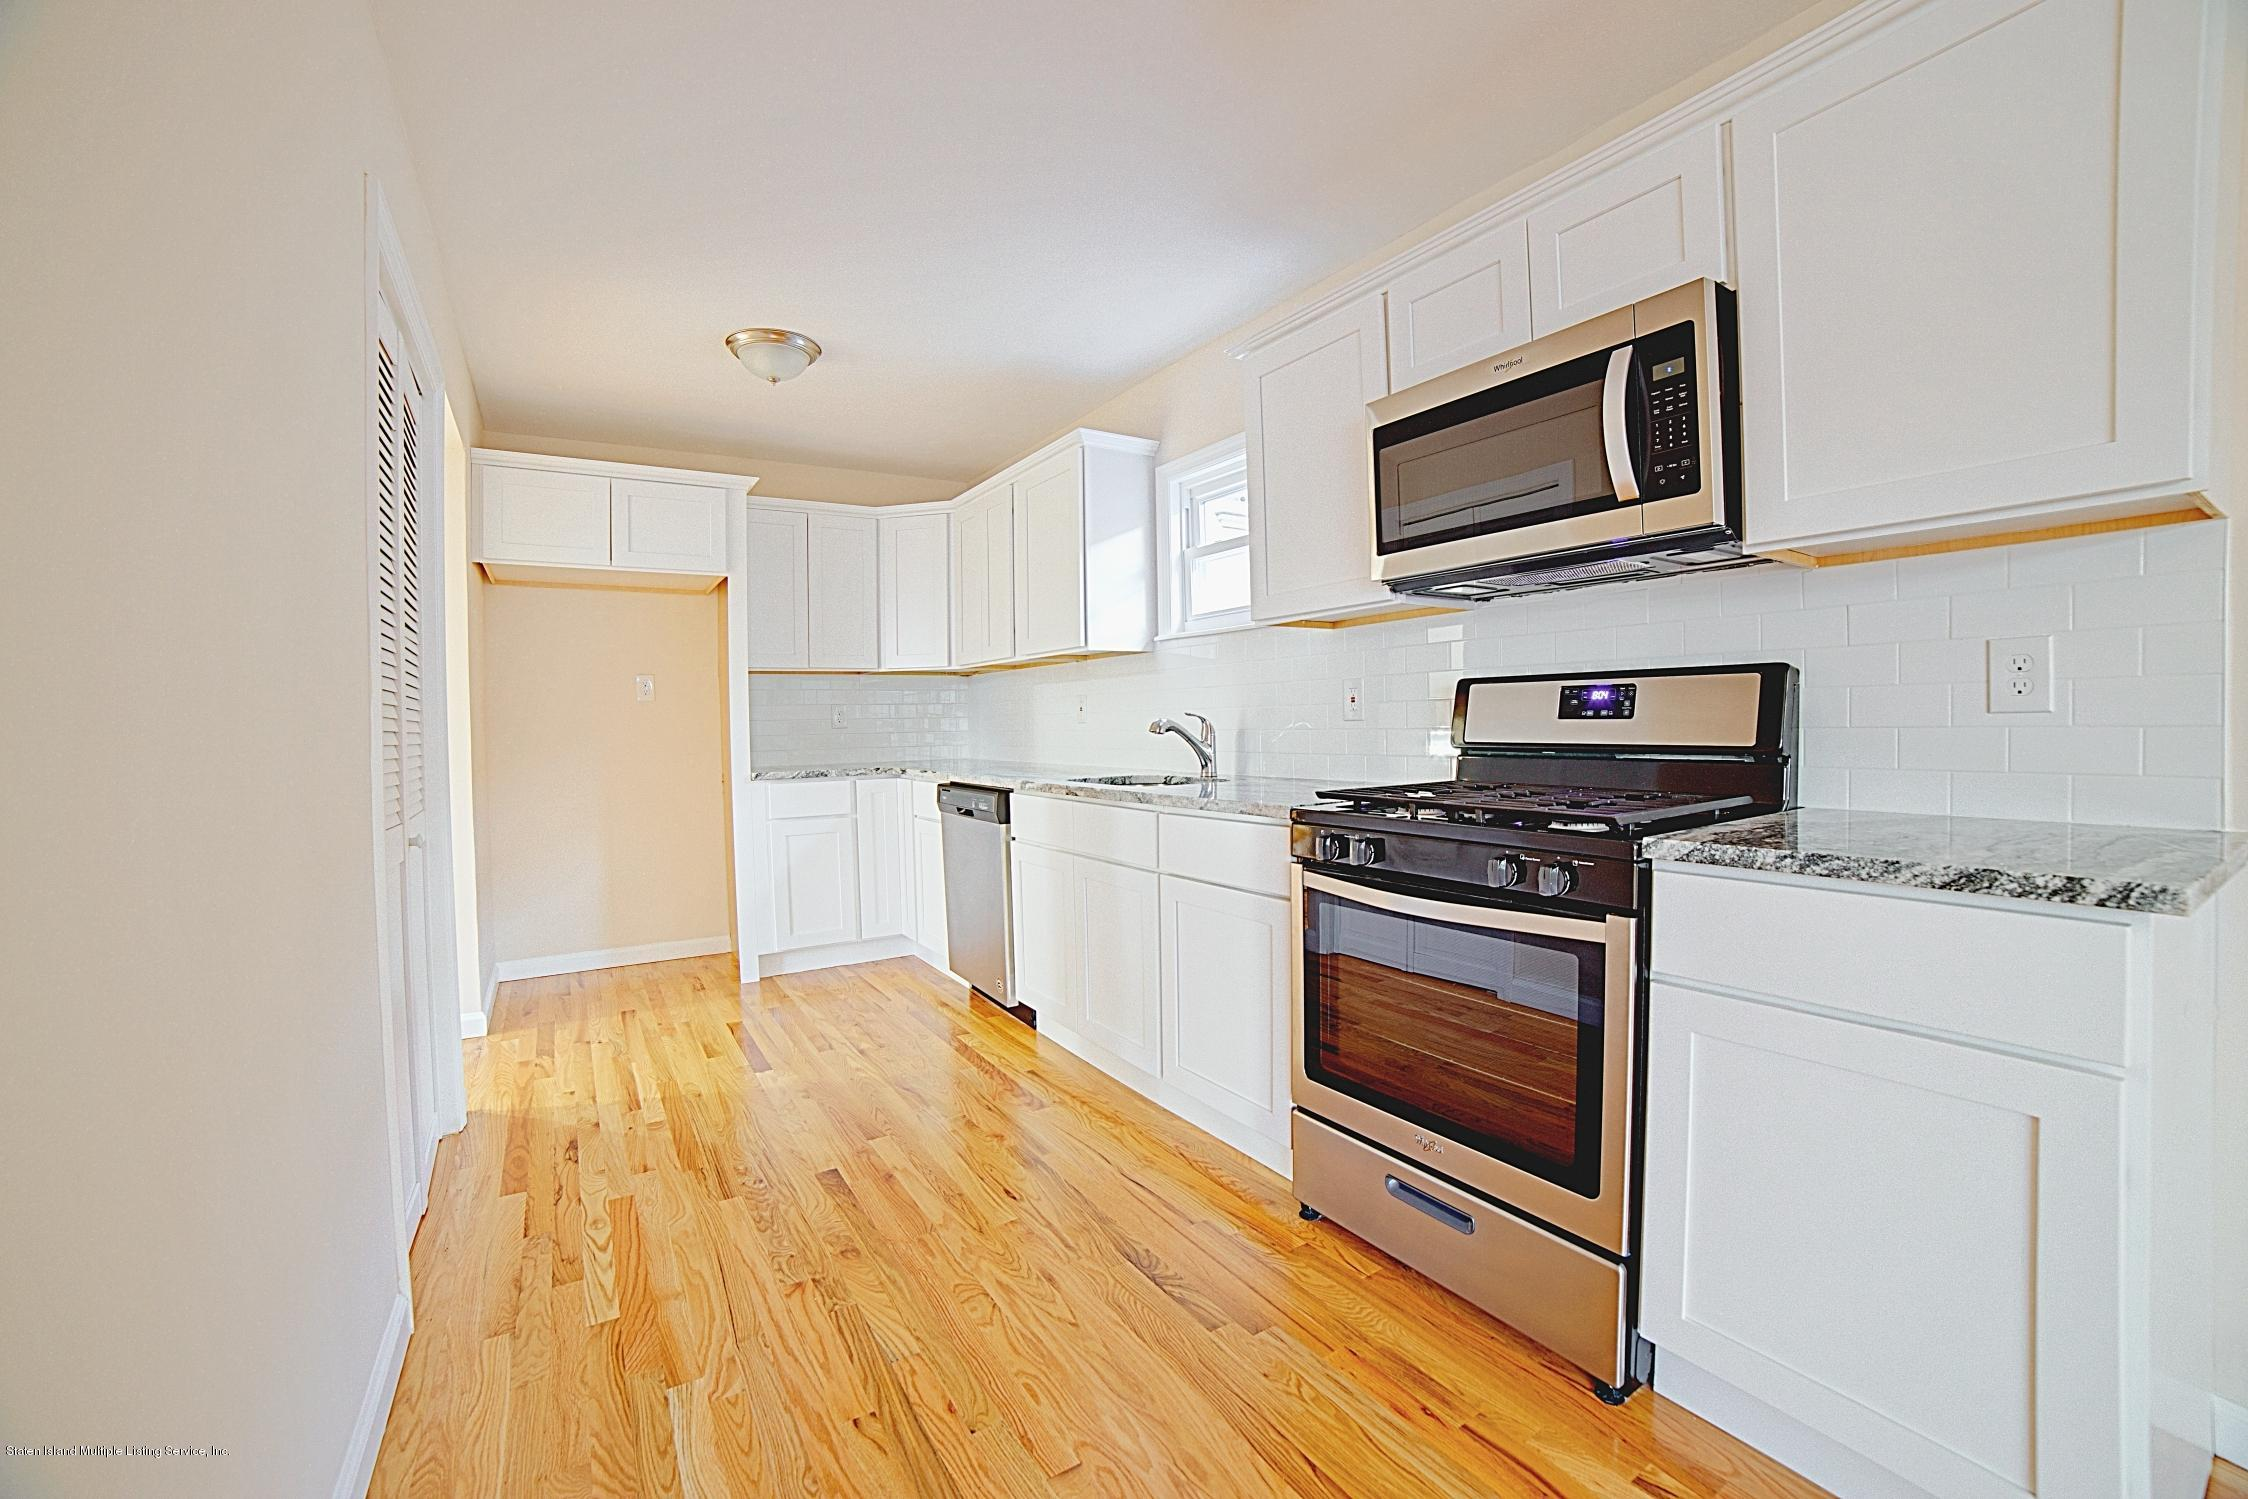 Single Family - Detached 87 Manchester Drive  Staten Island, NY 10312, MLS-1135150-8